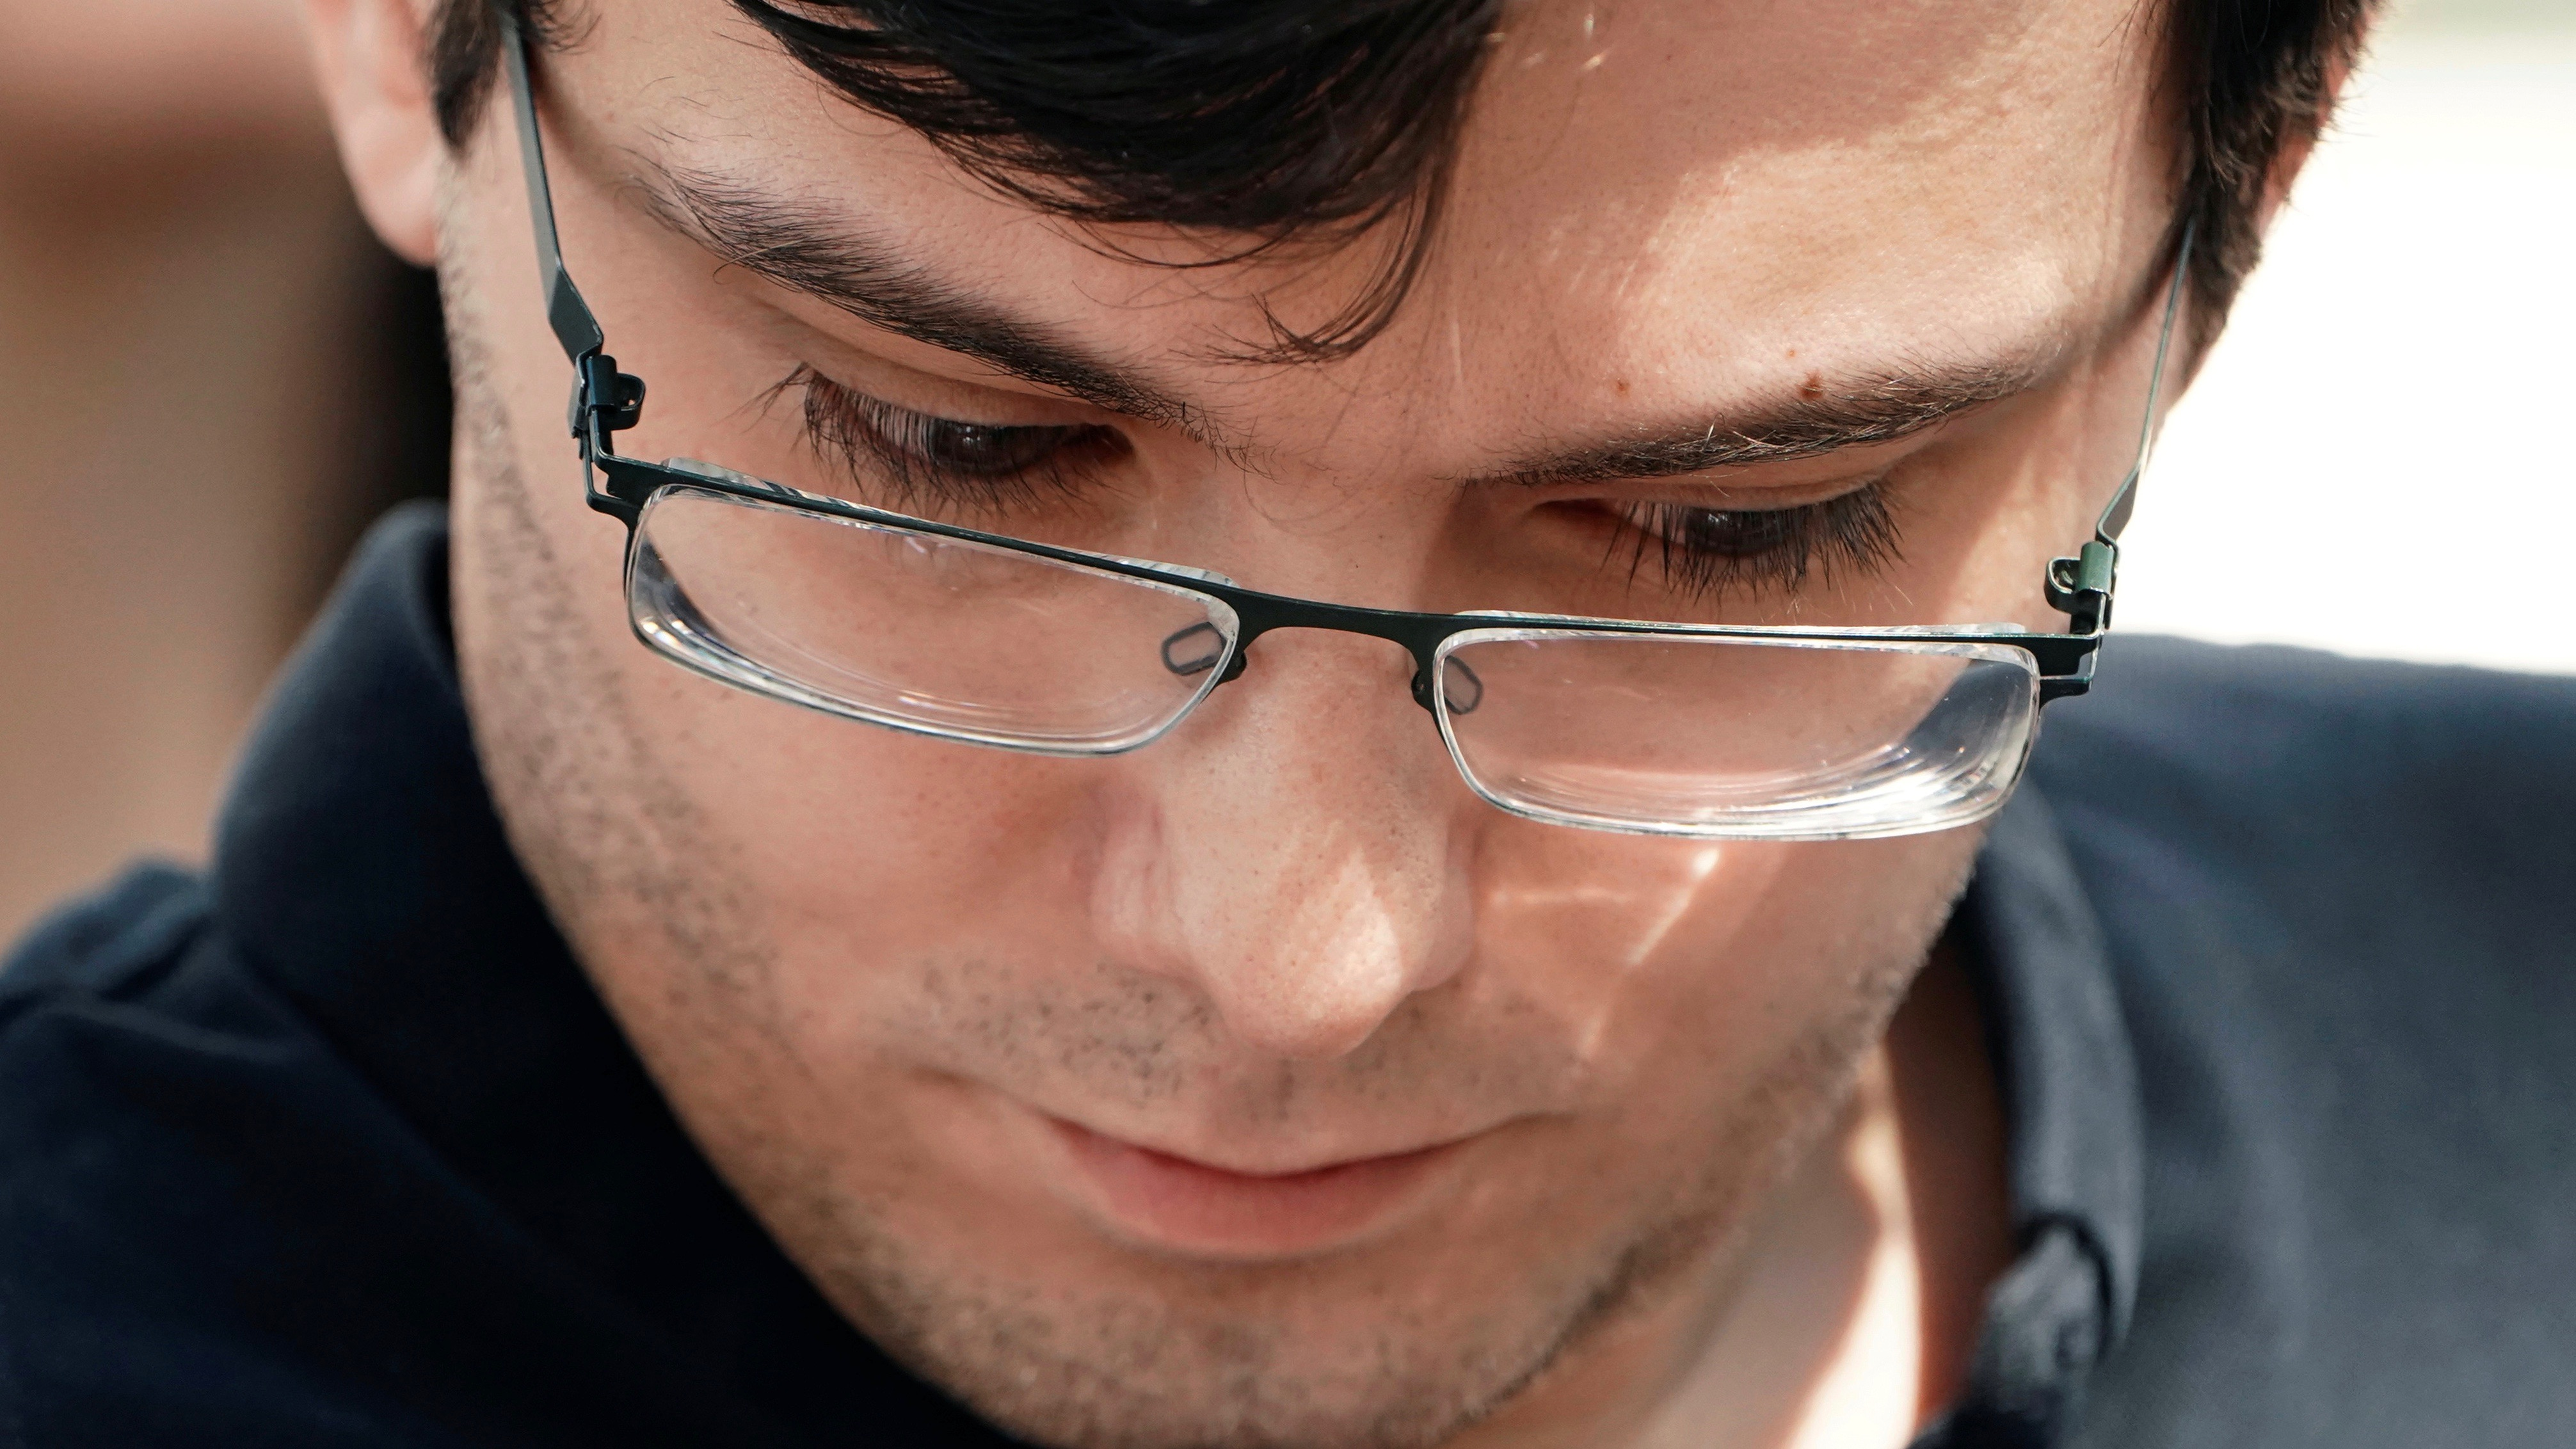 Martin Shkreli exits New York court after conviction.